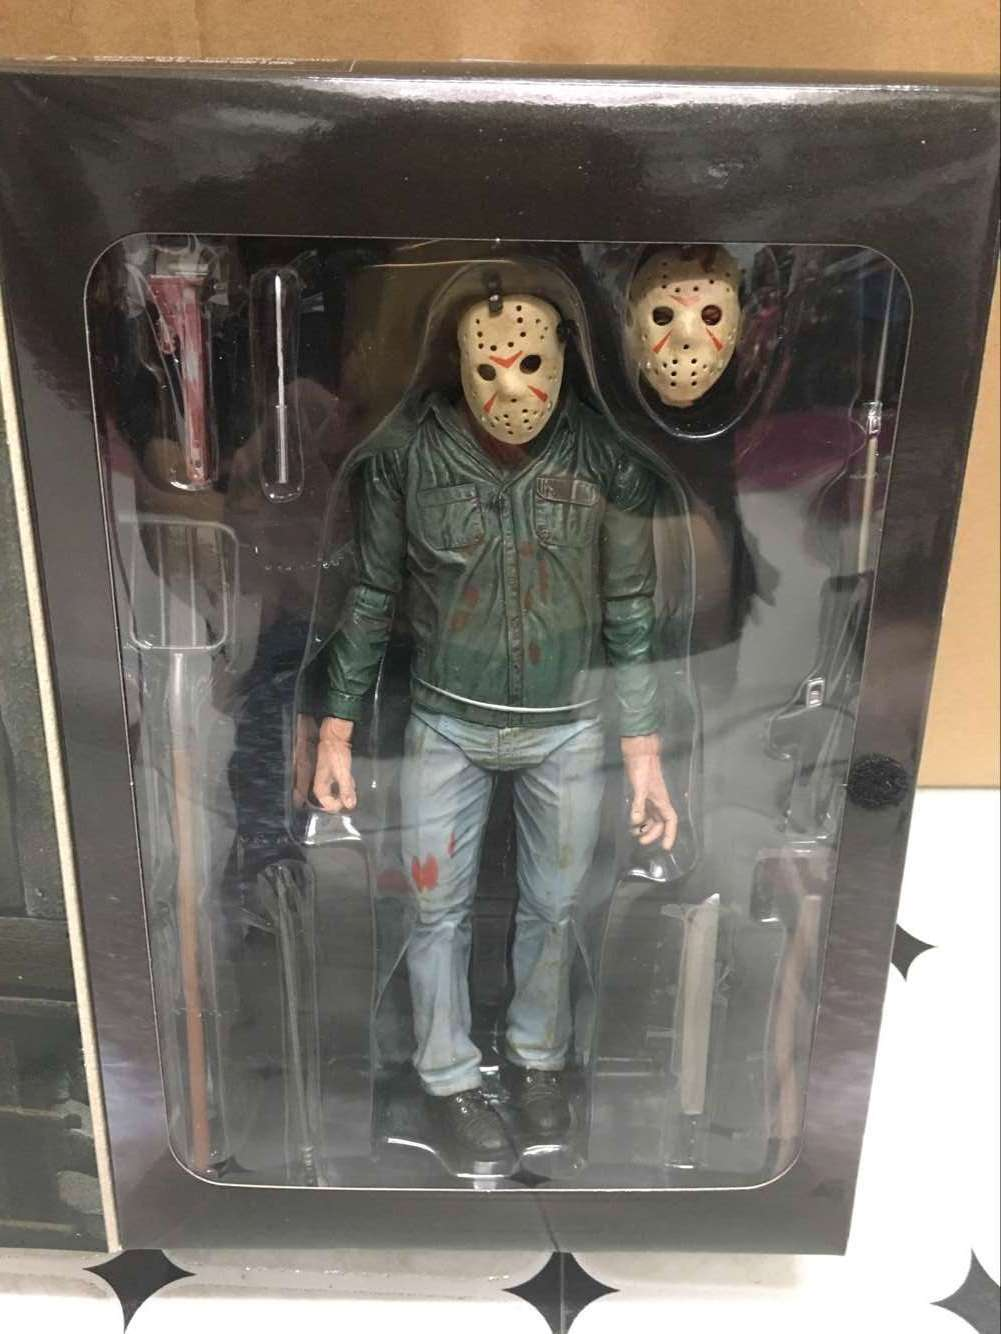 NECA A Nightmare on Elm Street 3: Dream Warriors PVC Action Figure Collectible Model Toy 7 Friday the 13th Jason Voorhees shfiguarts batman injustice ver pvc action figure collectible model toy 16cm kt1840